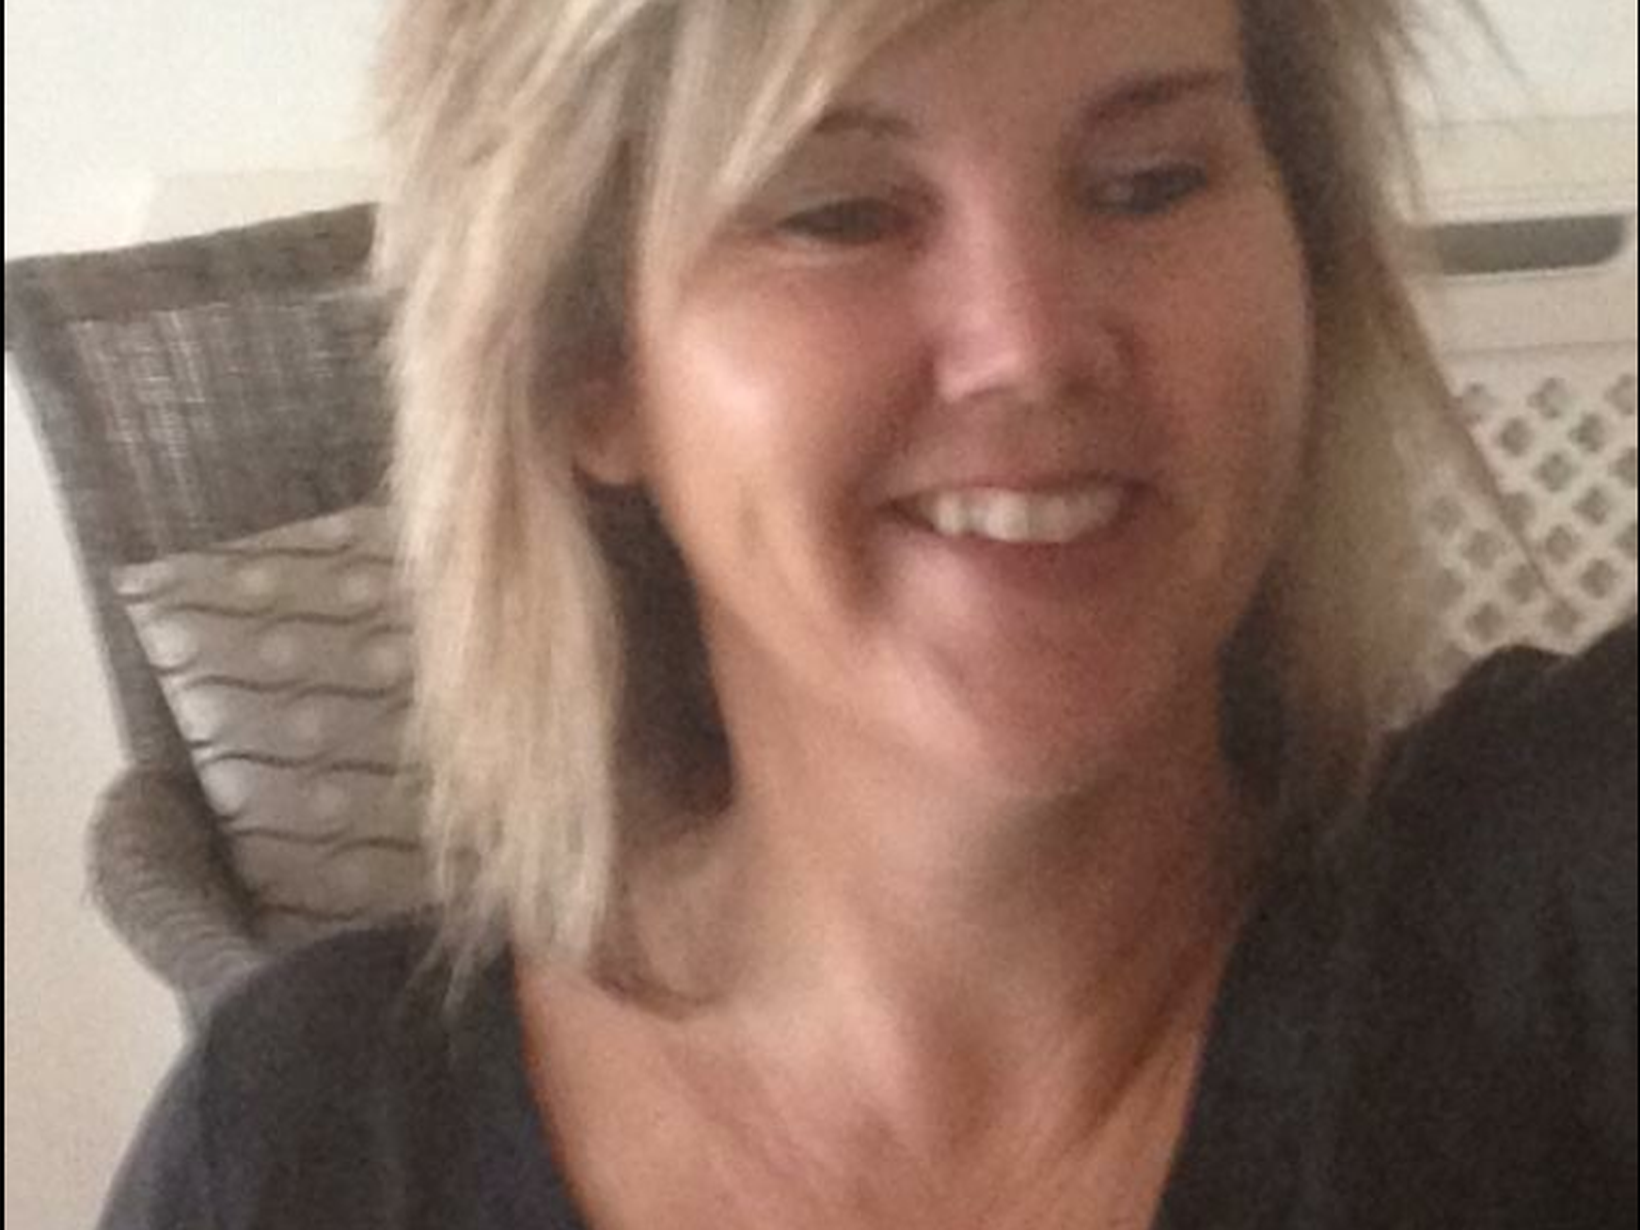 Sally from Newcastle, New South Wales, Australia